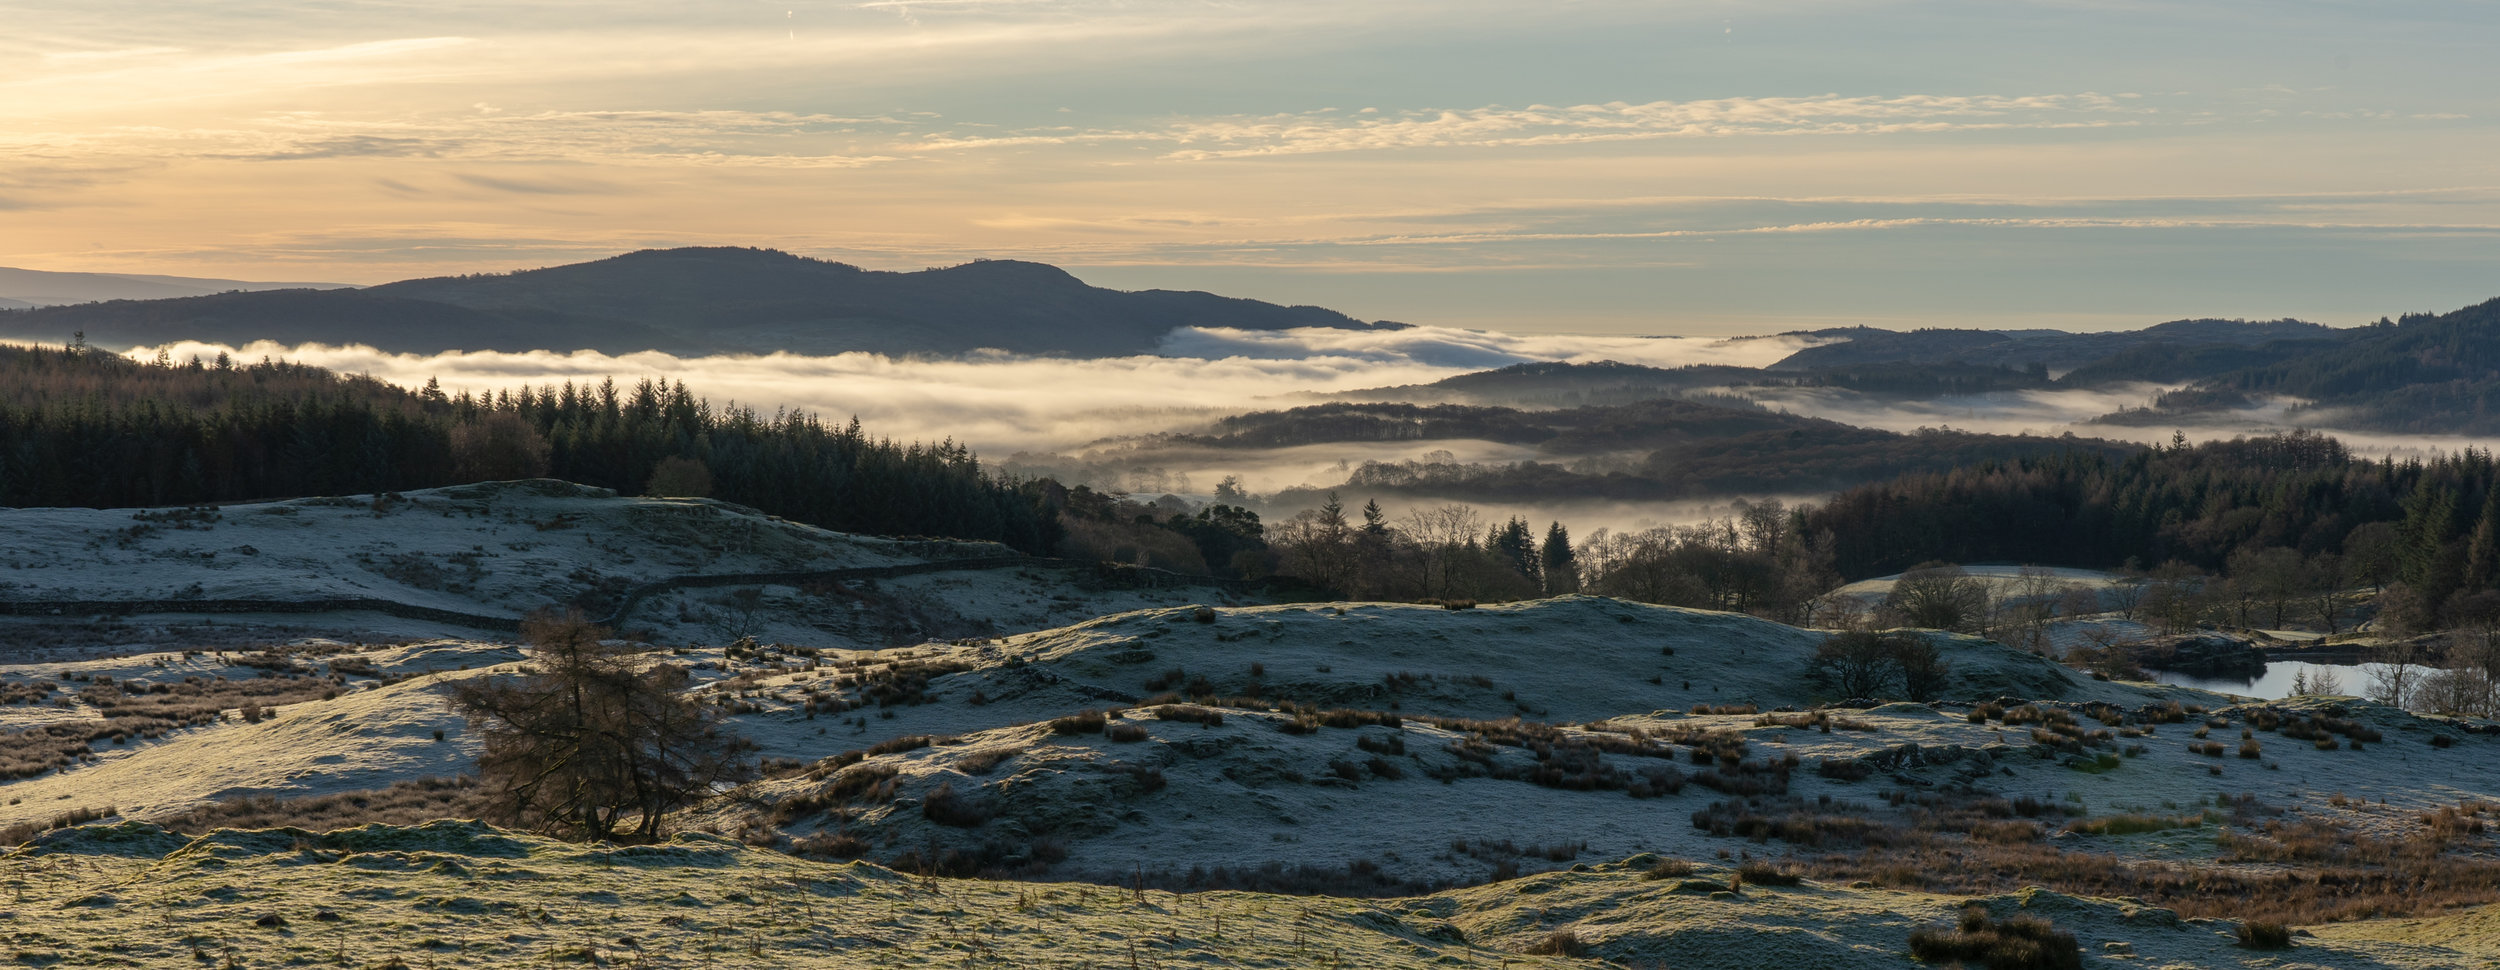 "Cloud Inversion over Windermere from Wise Een Tarn, December 2018.   f/14, 1/100 sec, 51mm   Some of my favourite shots have been taken from nearby Moss Eccles or Wise Een Tarn. On Christmas Eve I woke up early and saw the forecast on the ""Clear Outside"" app which told me that staying in bed would be a bad idea :). After hiking up the track I waited near Wise Een for the sunrise and searched for a composition north towards Langdale. However, thankfully I also turned around and saw this cloud cover over Windermere."